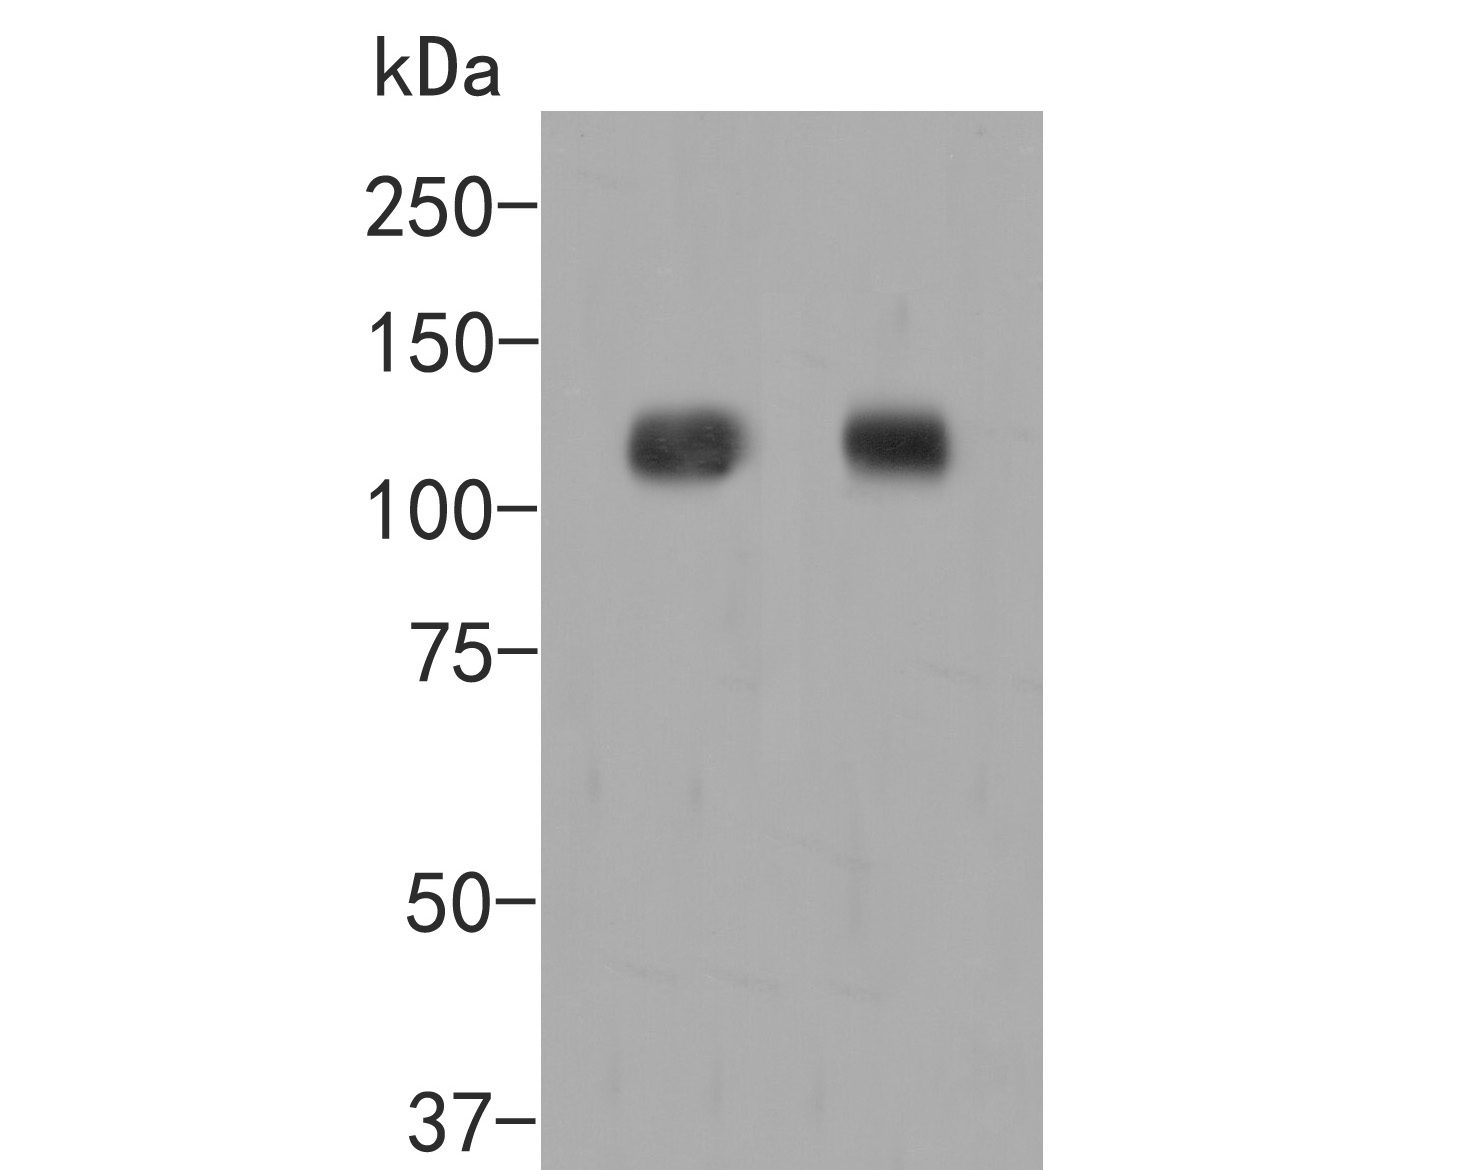 Western blot analysis of EPHA2 on different lysates. Proteins were transferred to a PVDF membrane and blocked with 5% BSA in PBS for 1 hour at room temperature. The primary antibody (ER2001-31, 1/500) was used in 5% BSA at room temperature for 2 hours. Goat Anti-Rabbit IgG - HRP Secondary Antibody (HA1001) at 1:5,000 dilution was used for 1 hour at room temperature.<br /> Positive control: <br /> Lane 1: A549 cell lysate<br /> Lane 2: PC-3M cell lysate